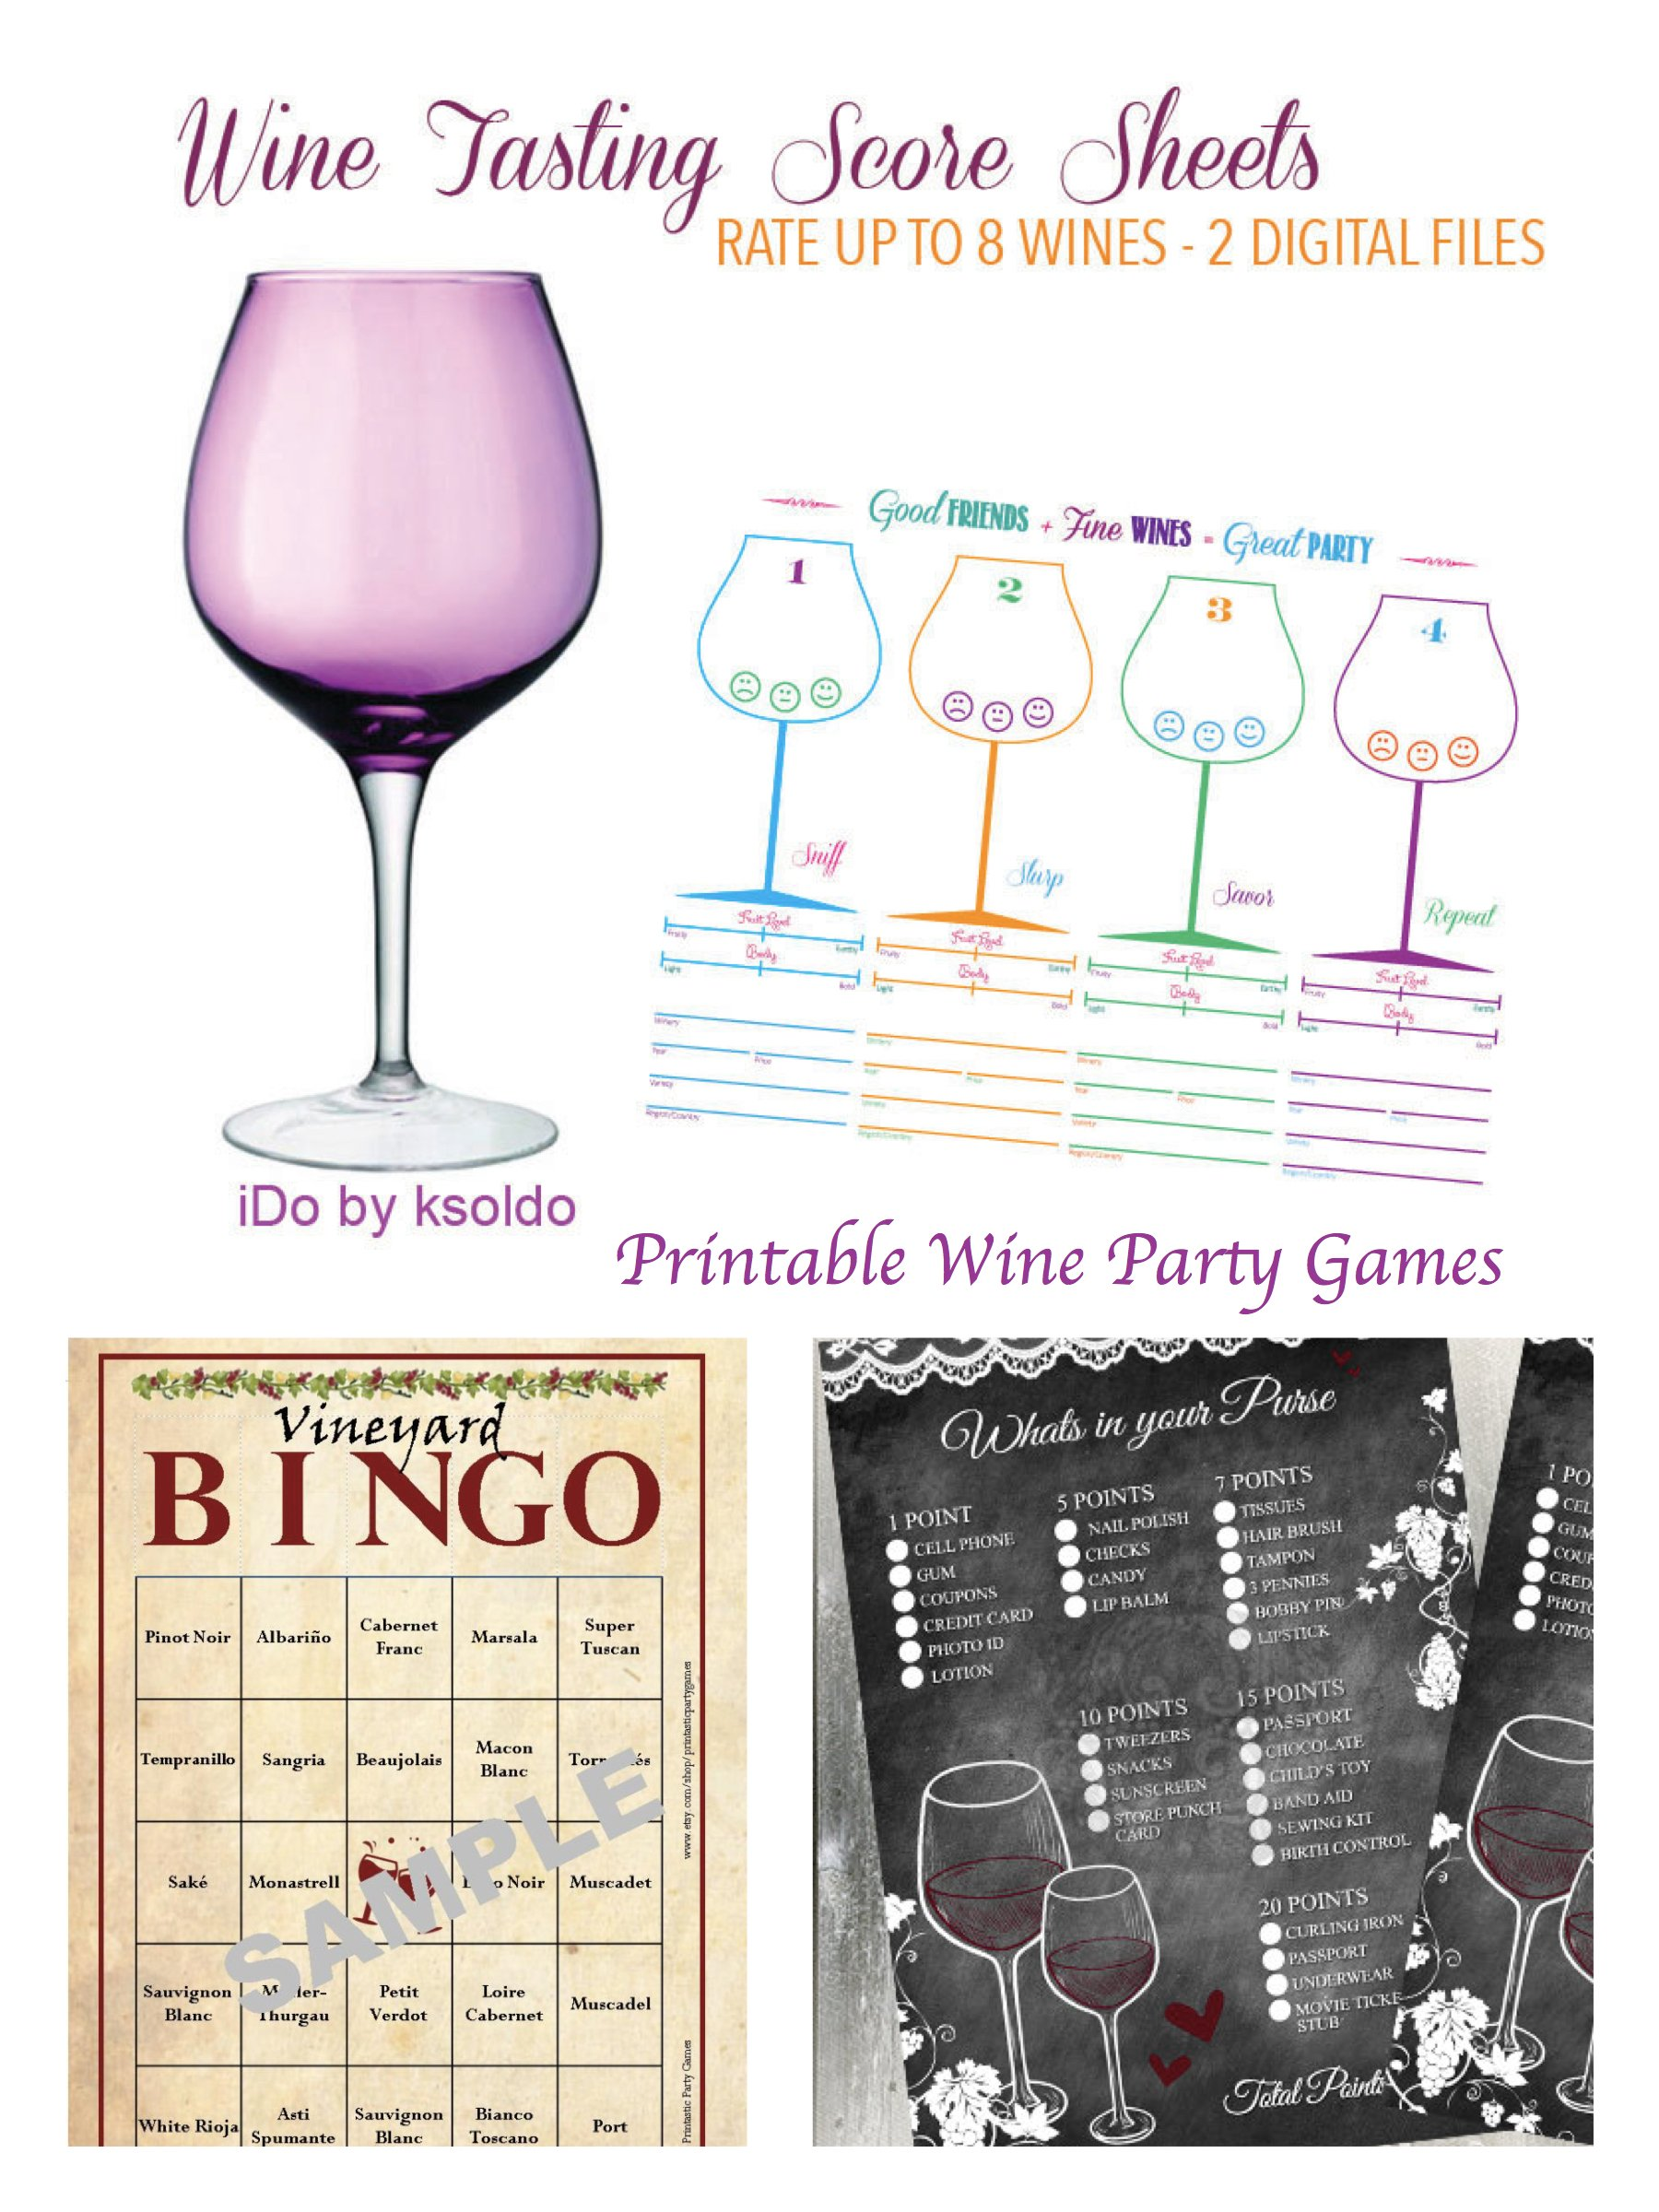 Printable Wine Party Games